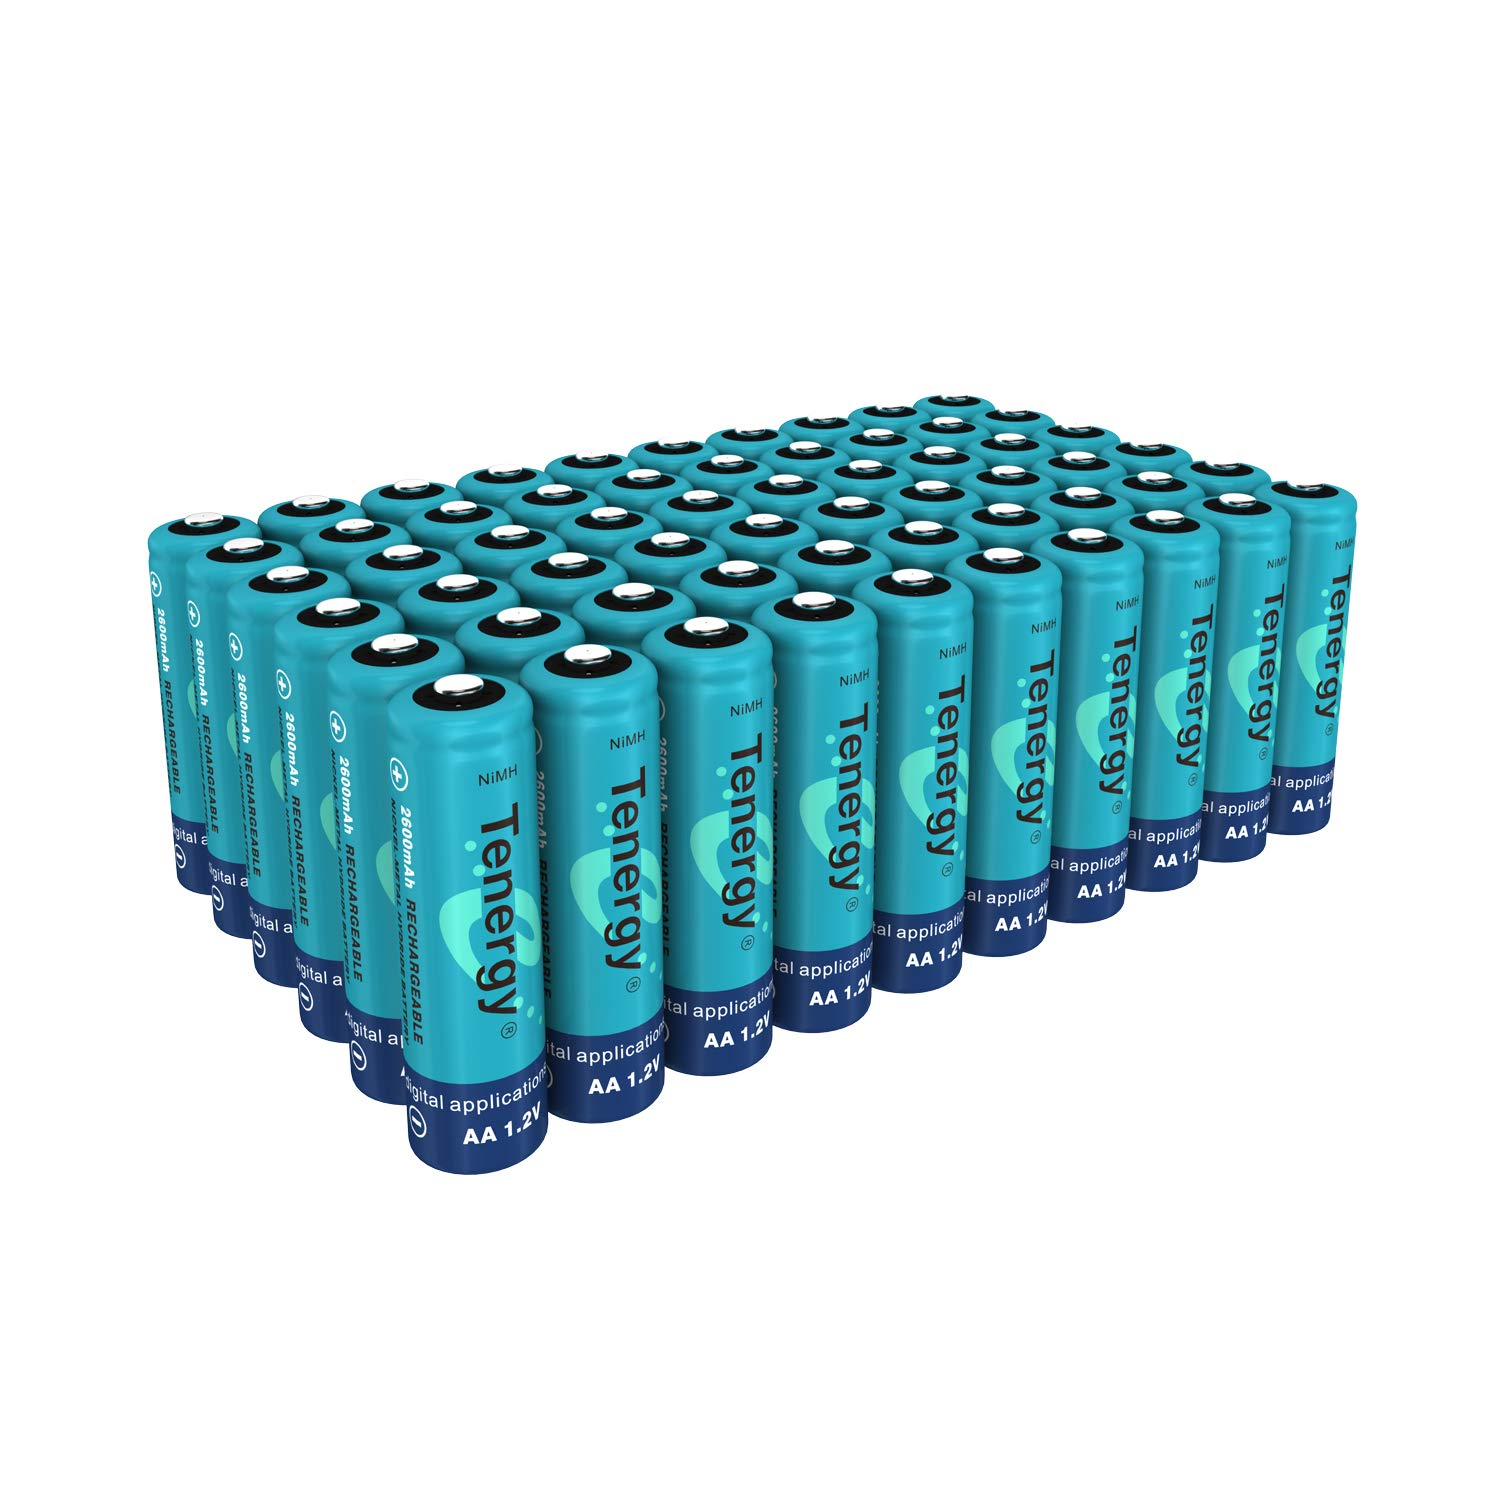 TenergyAA Rechargeable Battery, High Capacity 2600mAhNiMH AA Battery, 1.2VDouble A Batteries60-Pack